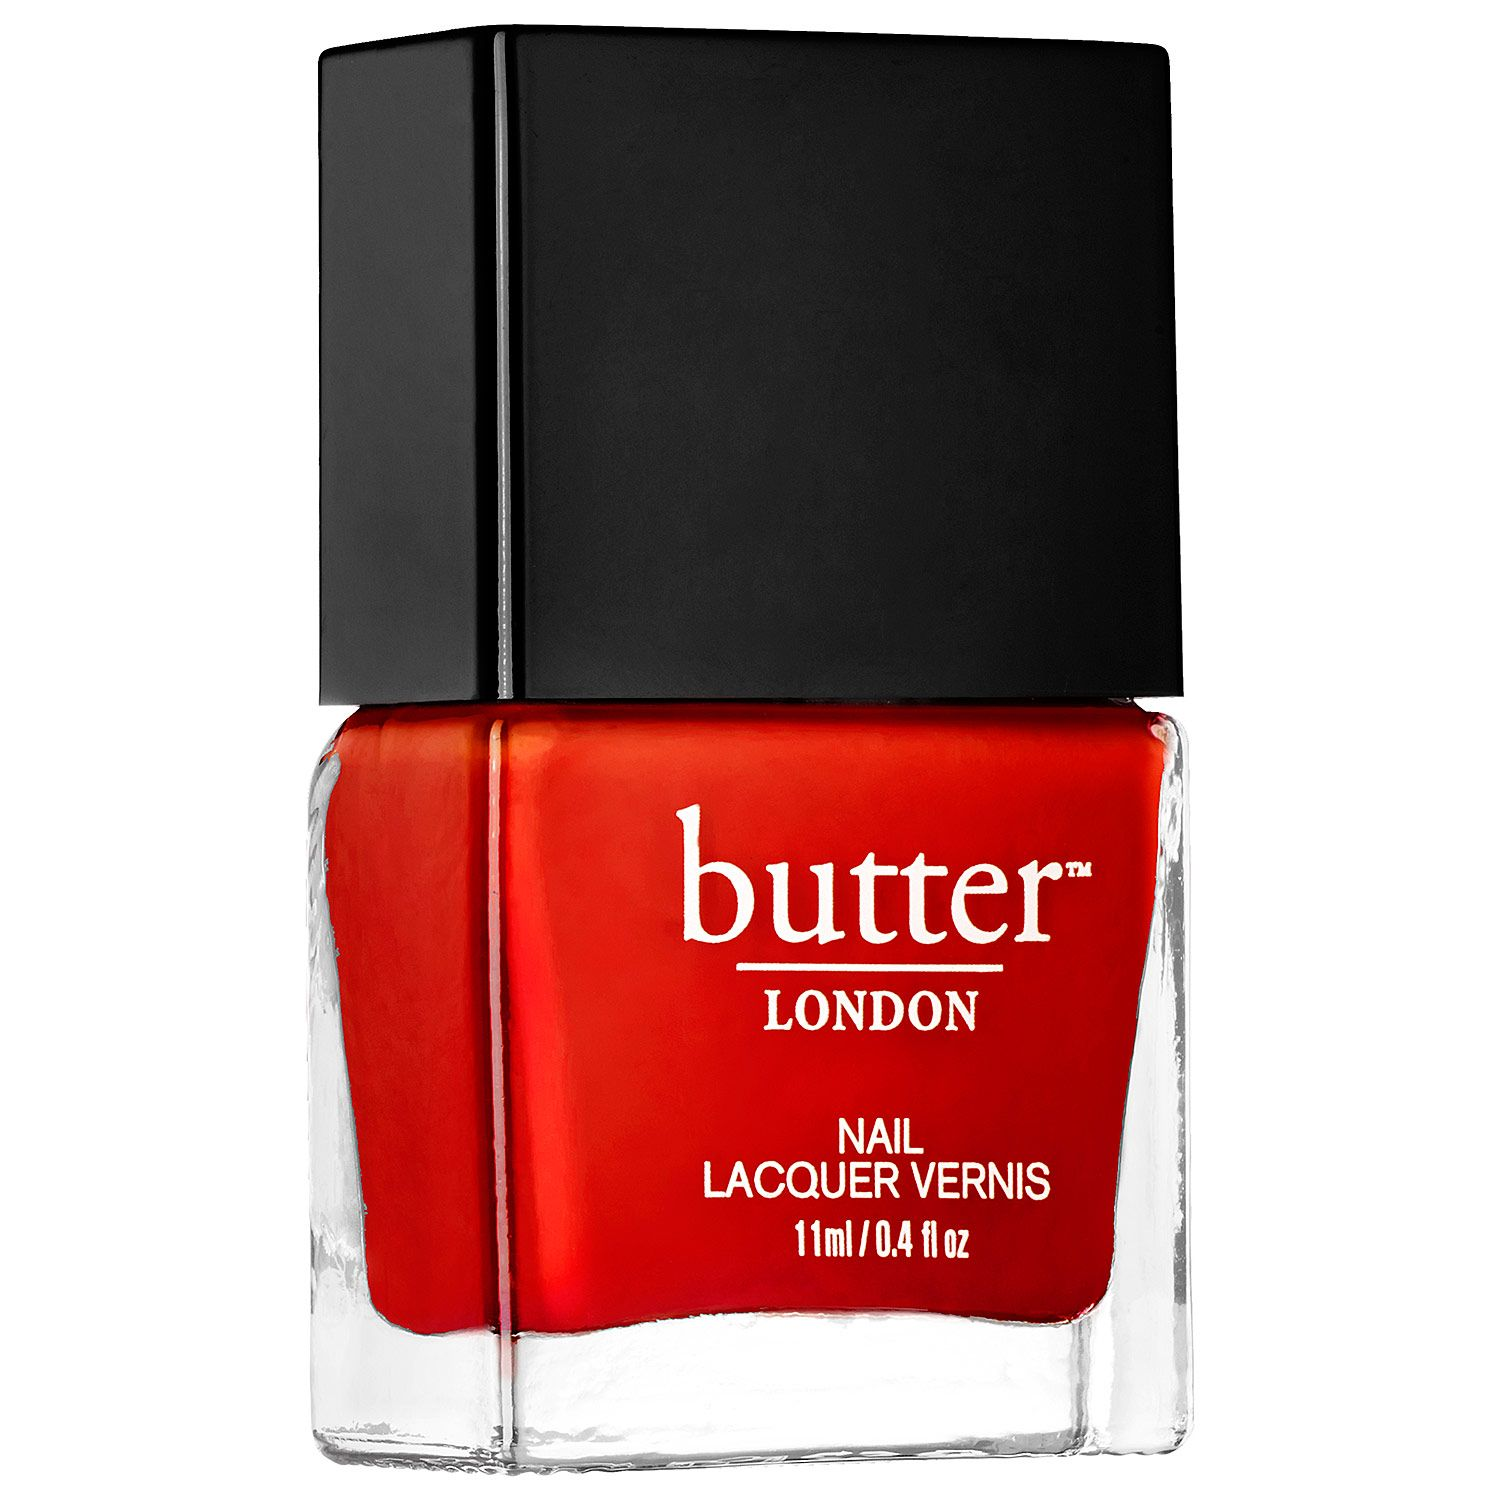 The ultimate wow factor! Butter LONDON - Lolly Brights Collection - Ladybird #Sephora #nailpolish #nailspotting #limitededition